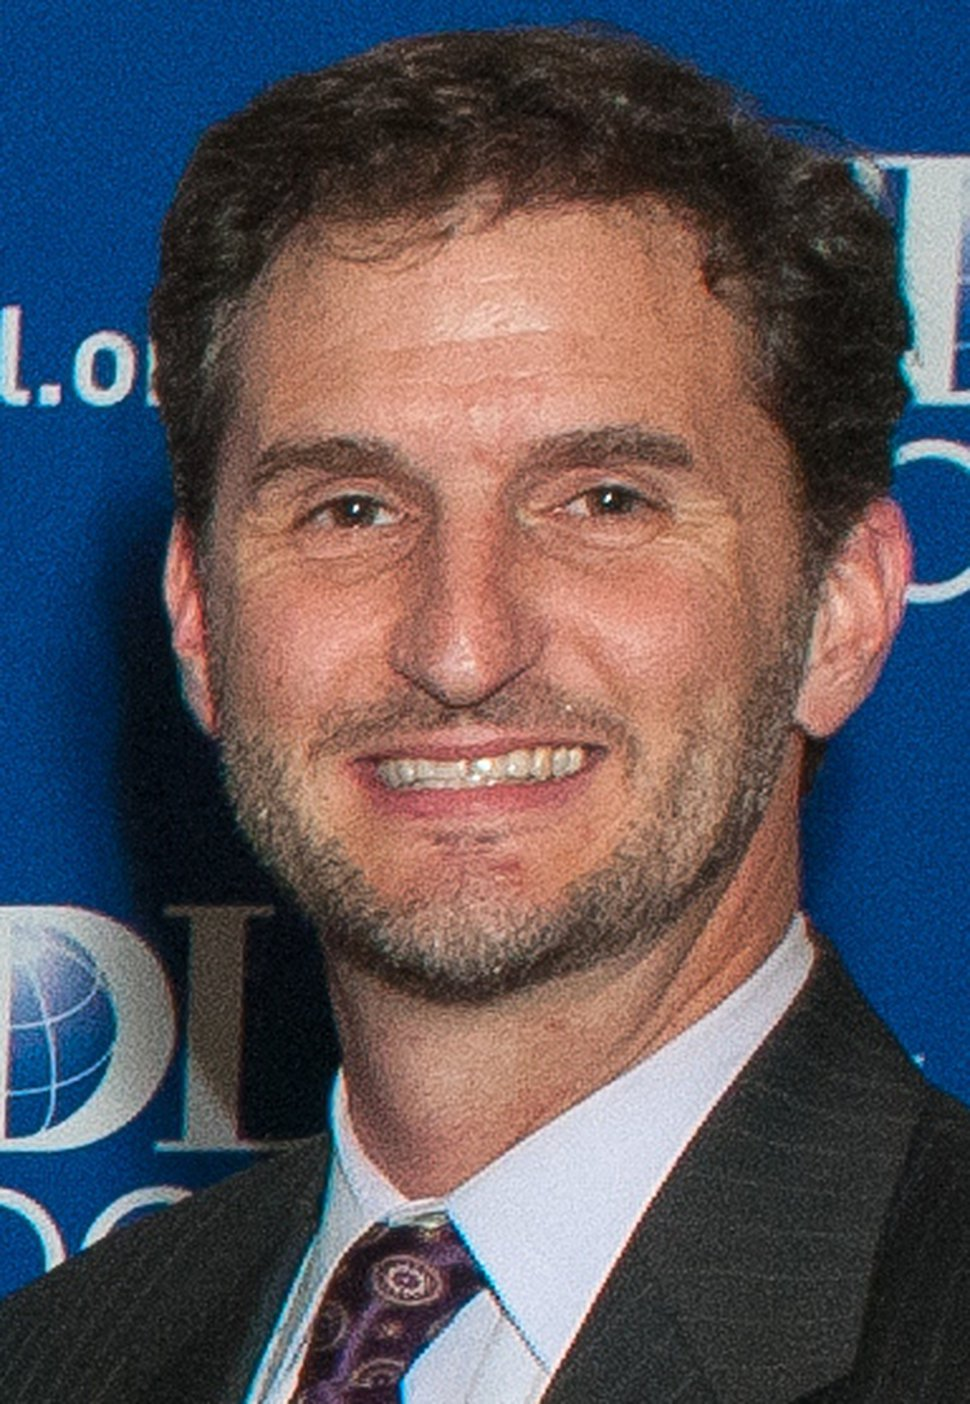 Seth Brysk is the Central Pacific Regional Director of the Anti-Defamation League.